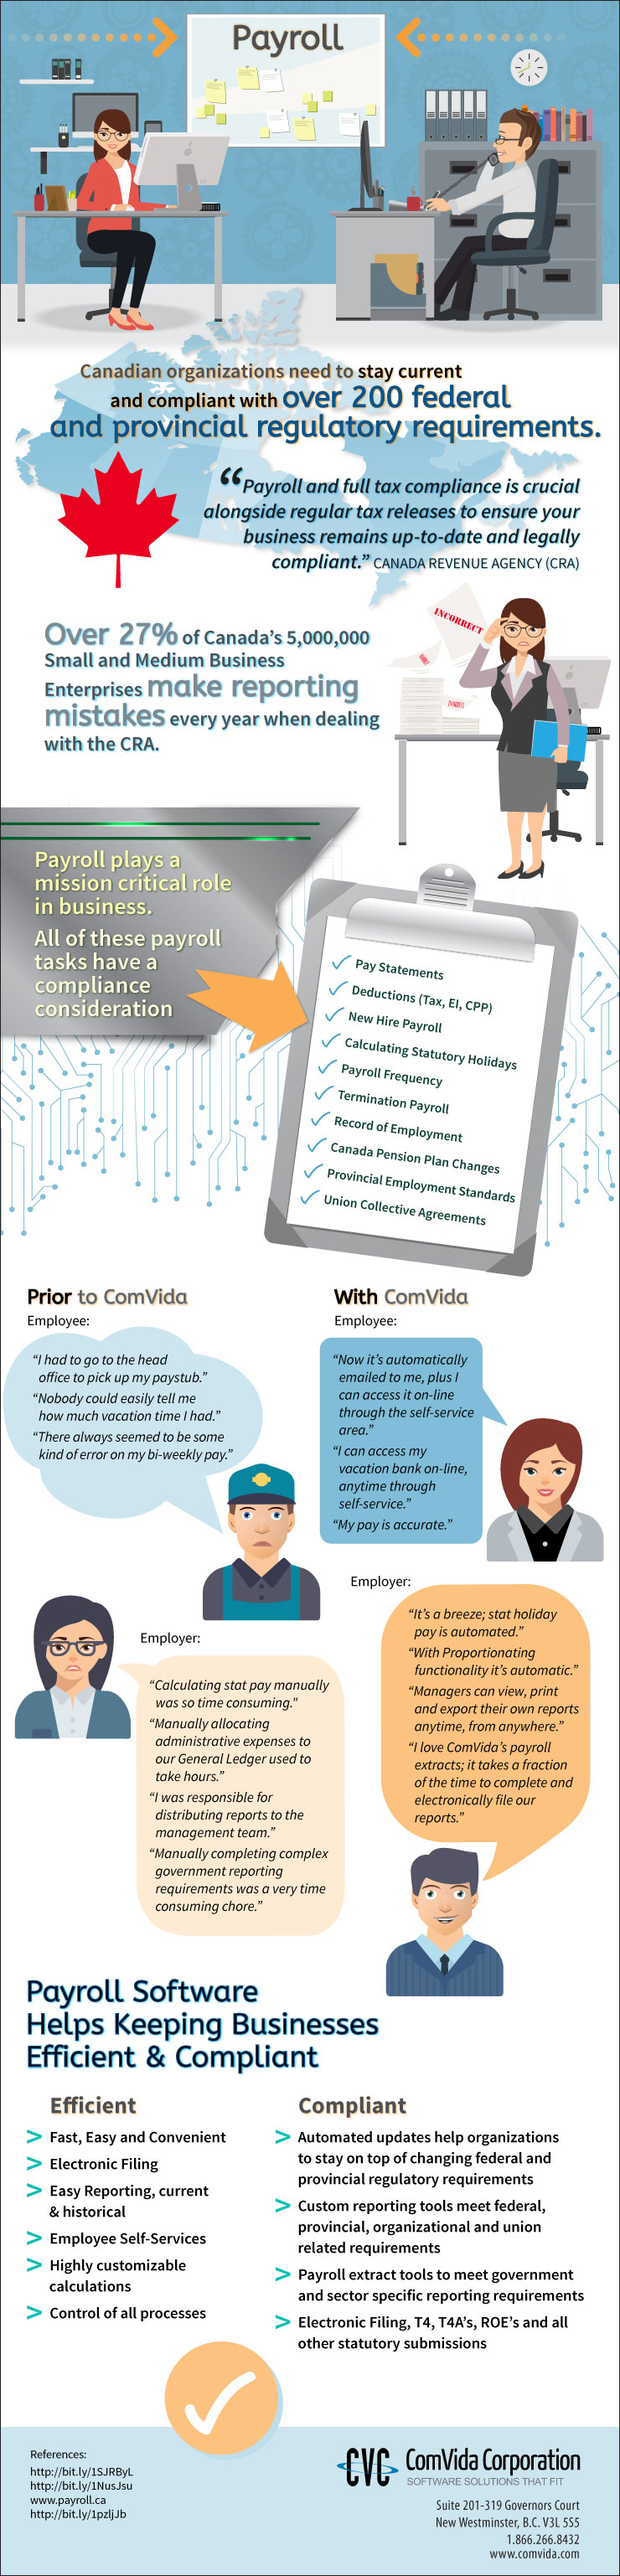 Comvida-Payroll-Software